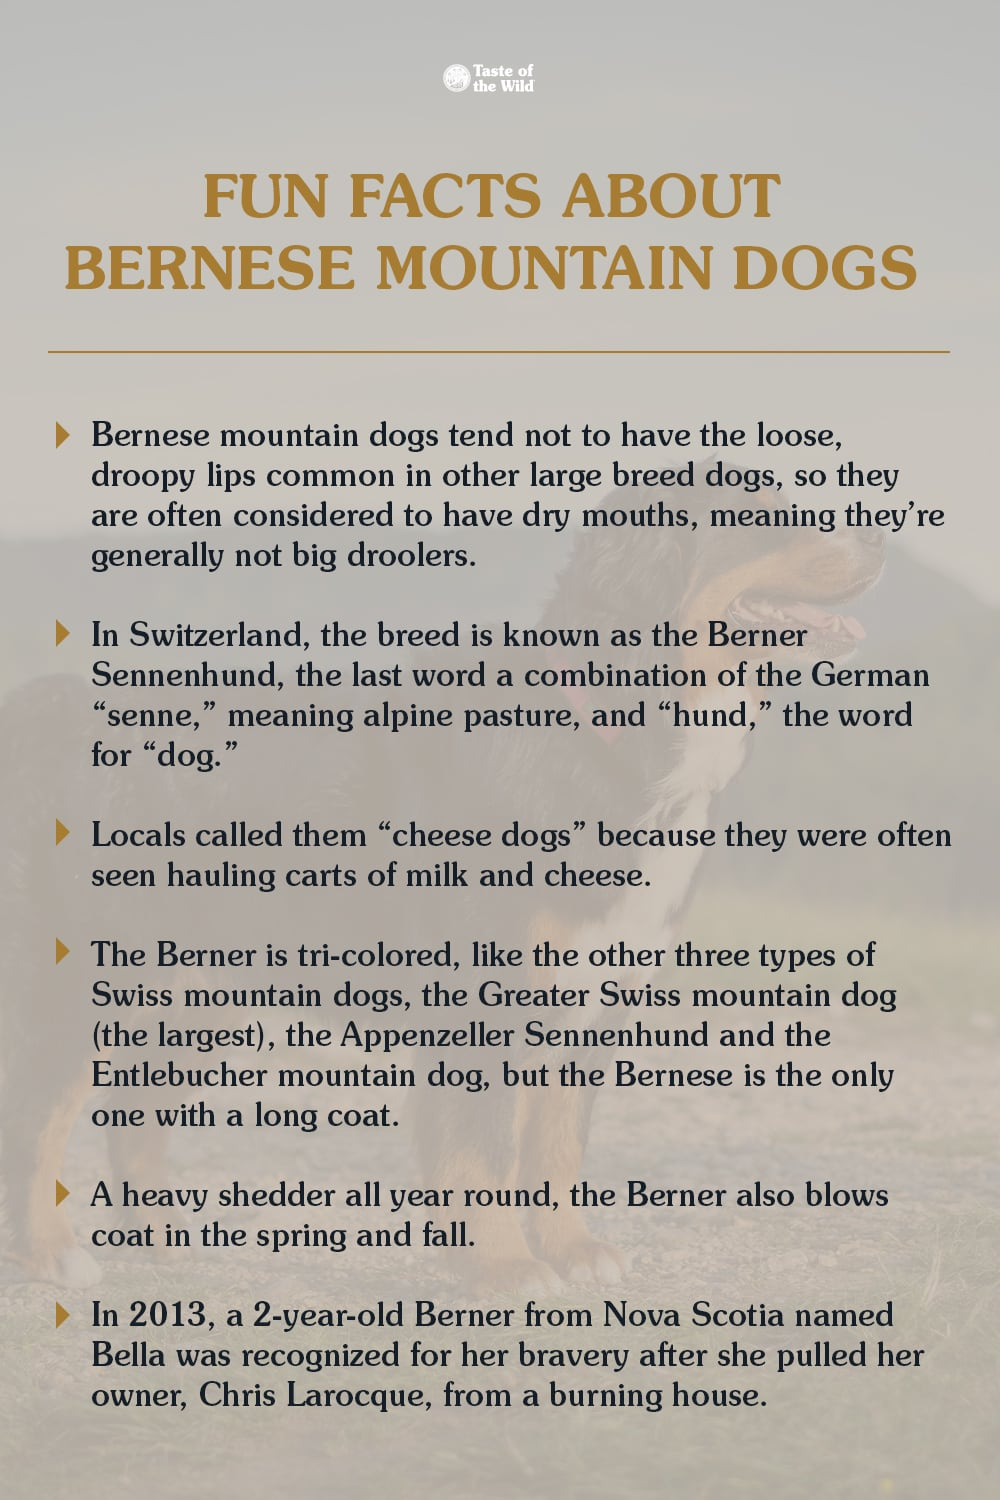 Infographic of fun facts about Bernese mountain dogs